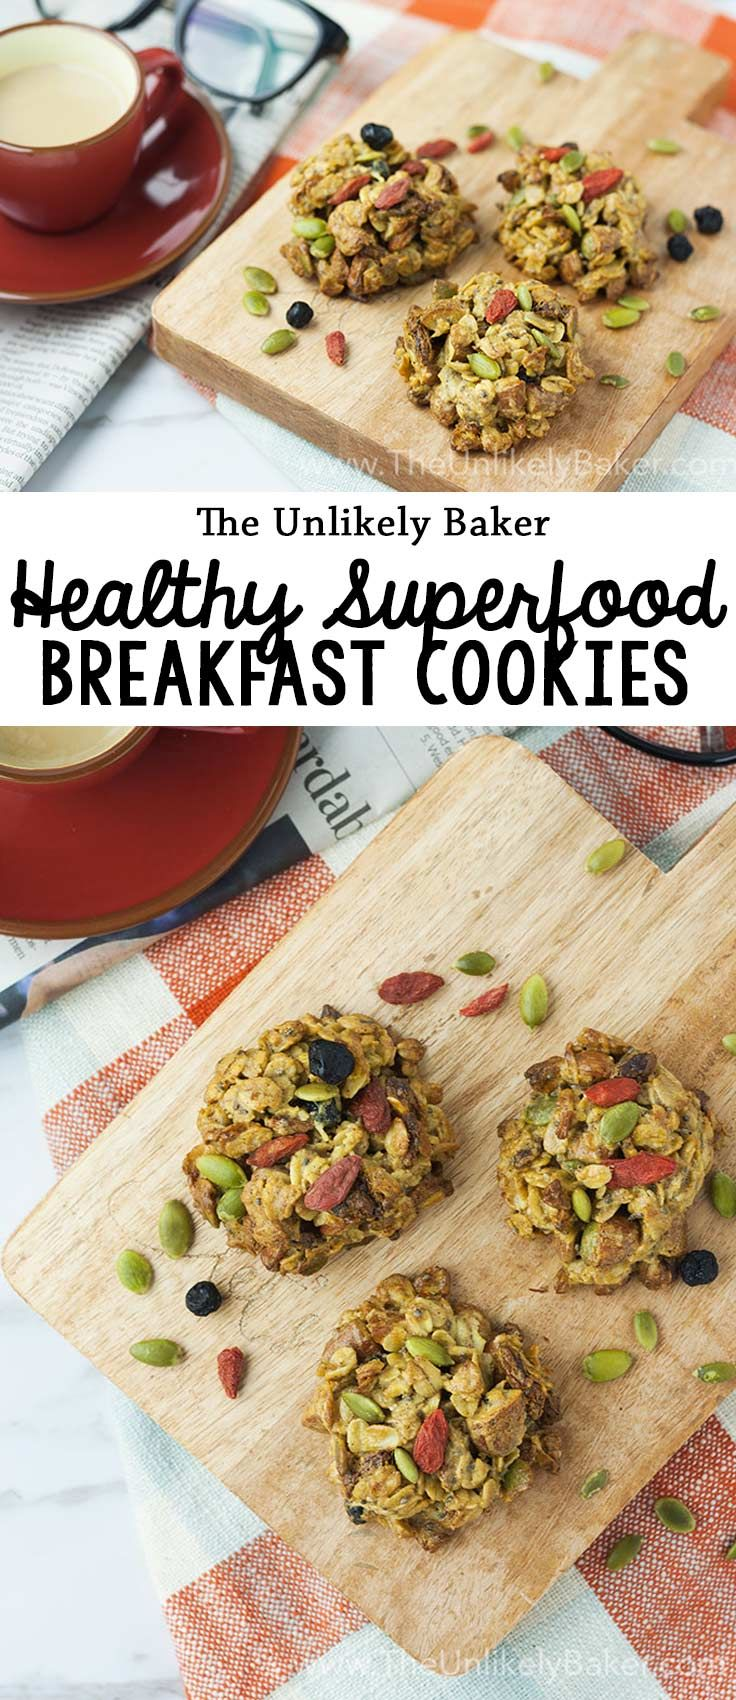 [VIDEO] These superfood breakfast cookies are packed with ingredients like goji berries and chia seeds. Delicious and good for you! #recipes #breakfast #cookies  #healthy #baking #superfoods #videorecipe